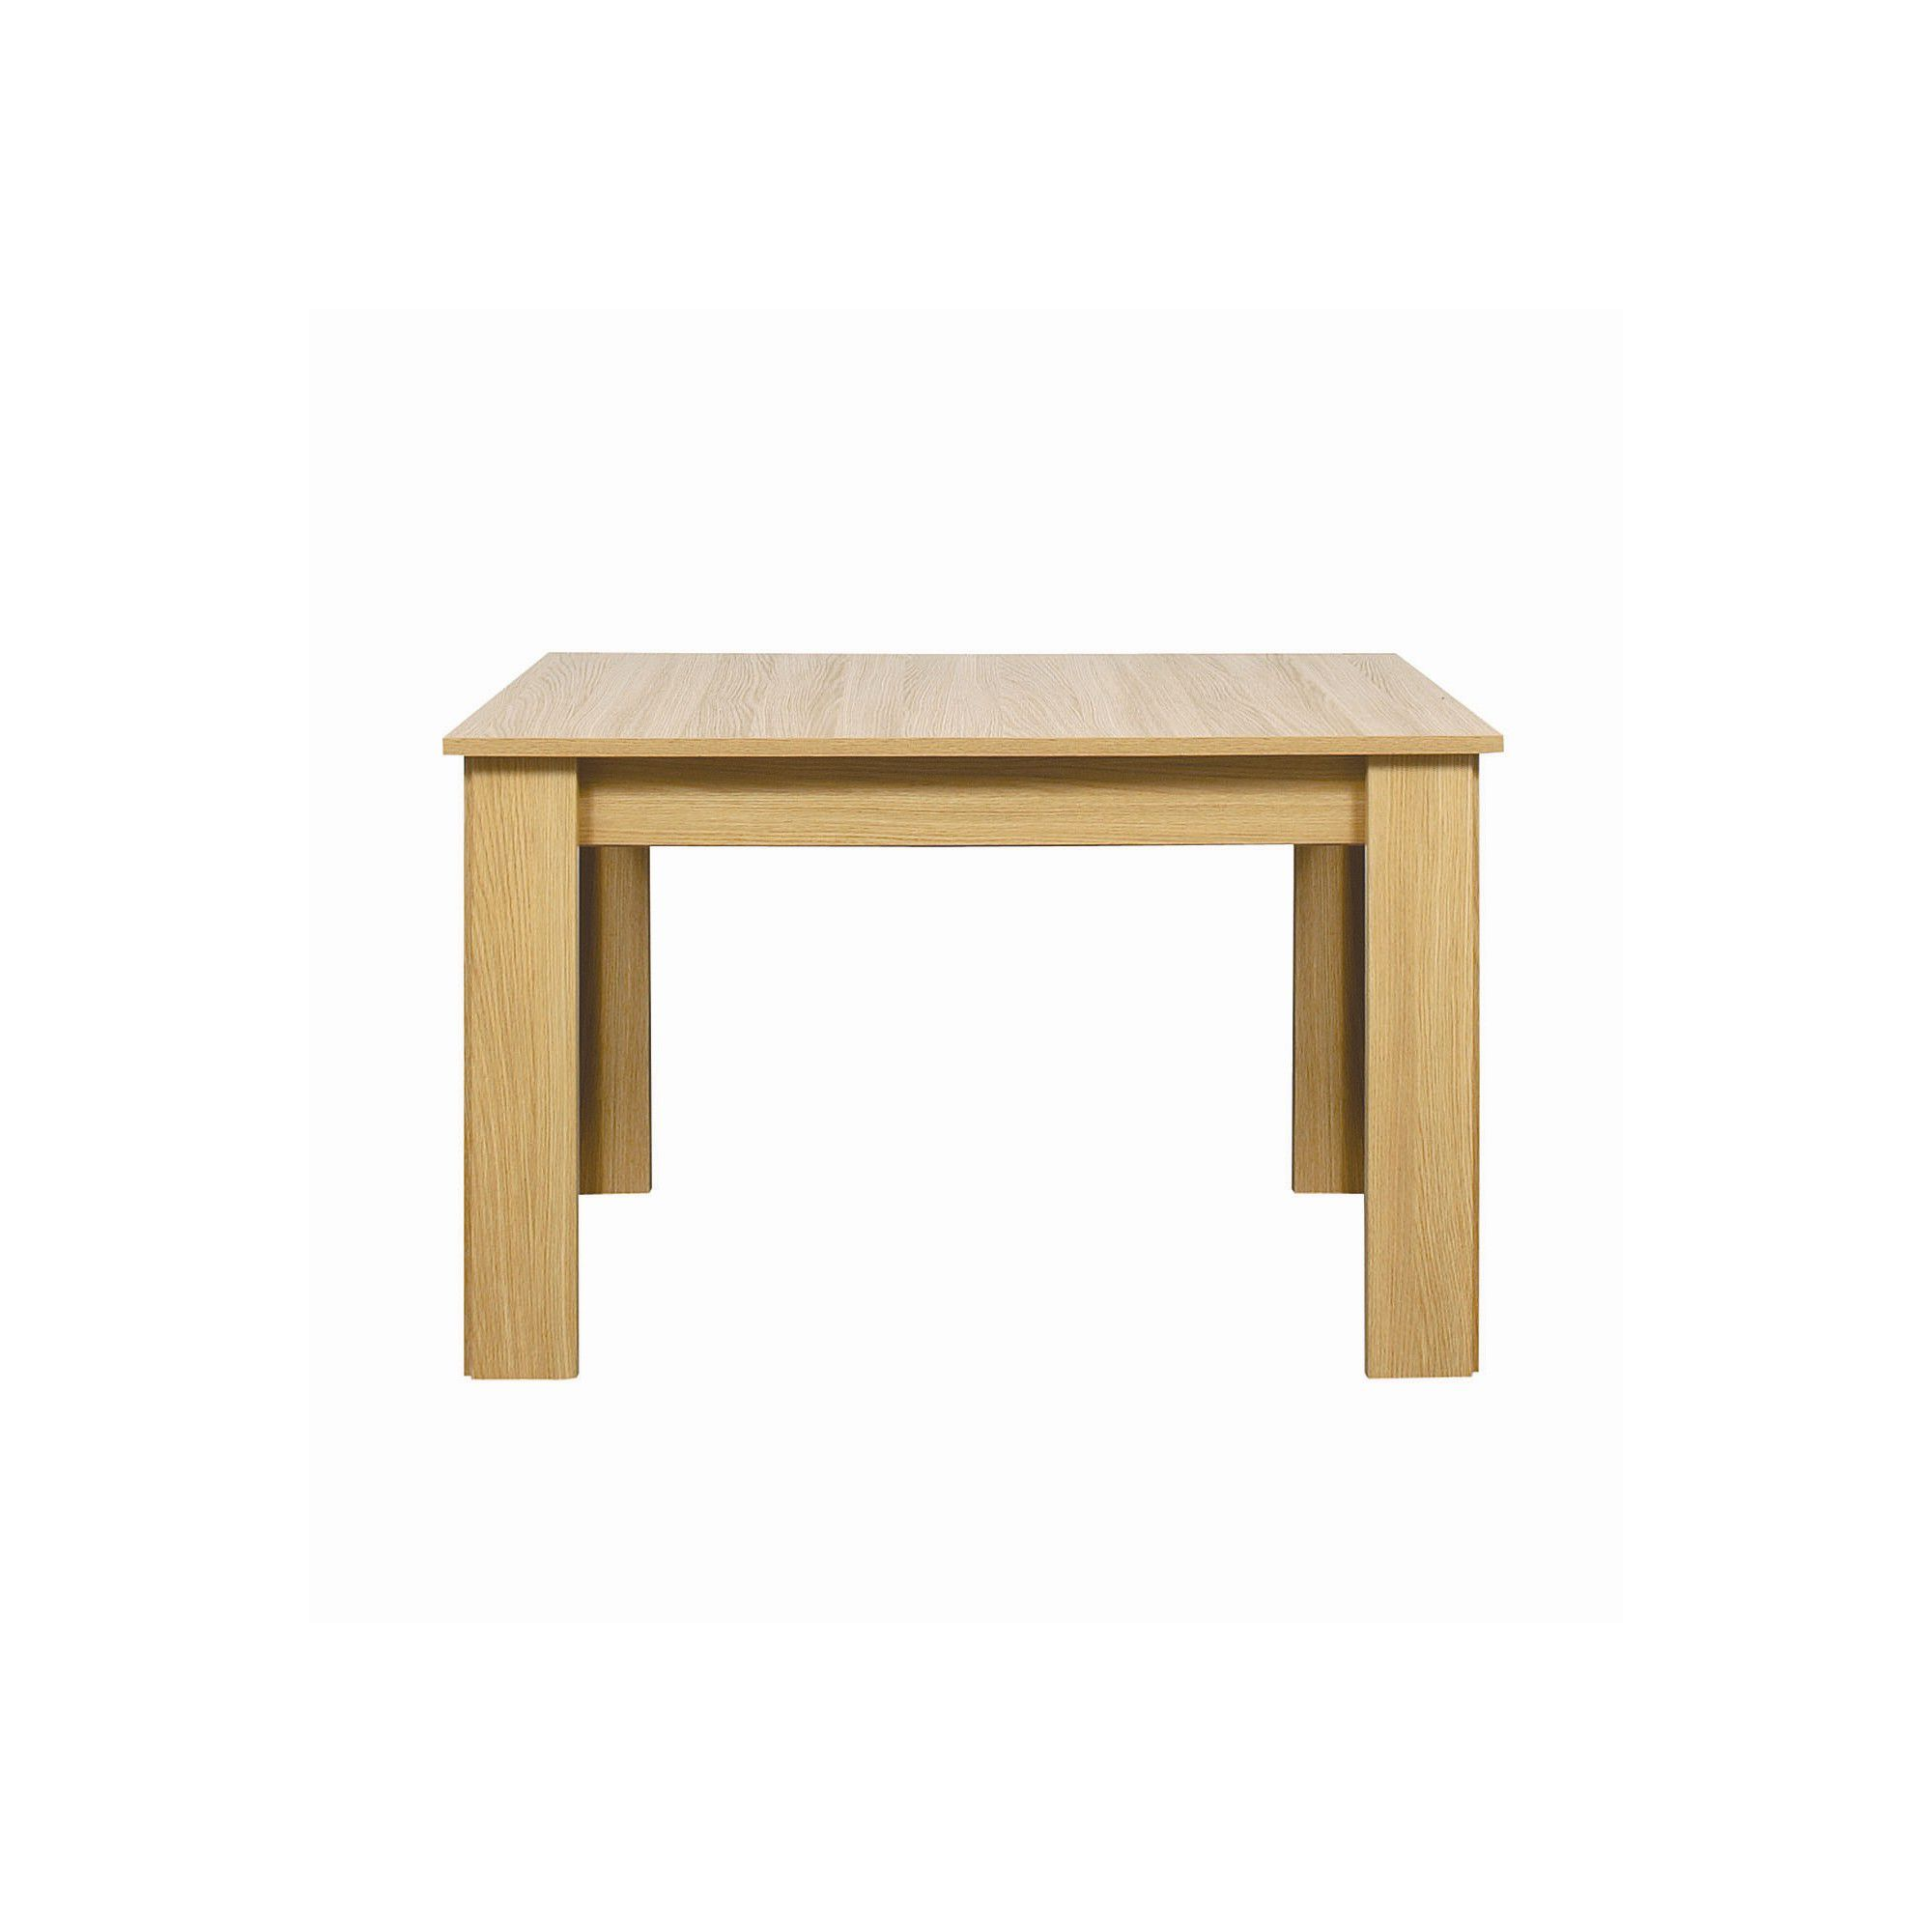 Other Caxton Huxley 4 Leg Compact Extending Dining Table in Light Oak